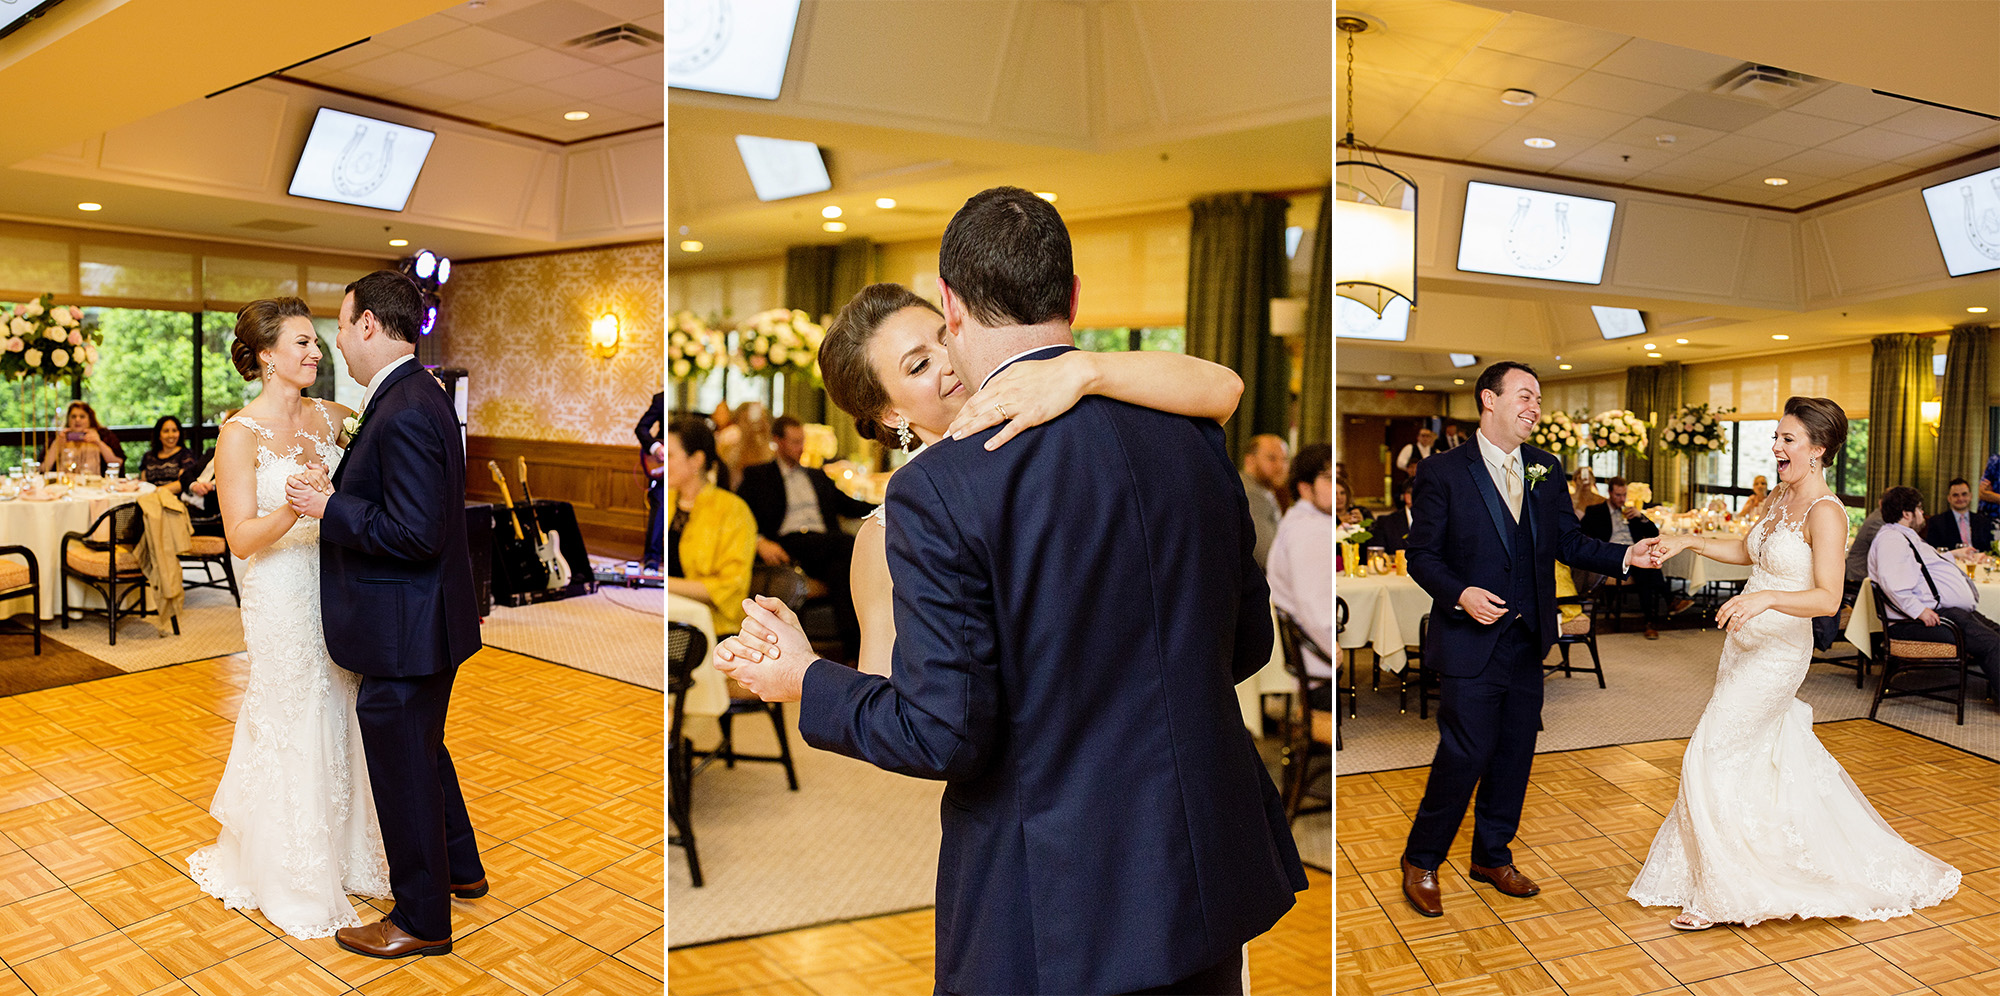 Seriously_Sabrina_Photography_Lexington_Kentucky_Downtown_Keeneland_Clubhouse_Wedding_Spitzer_120.jpg